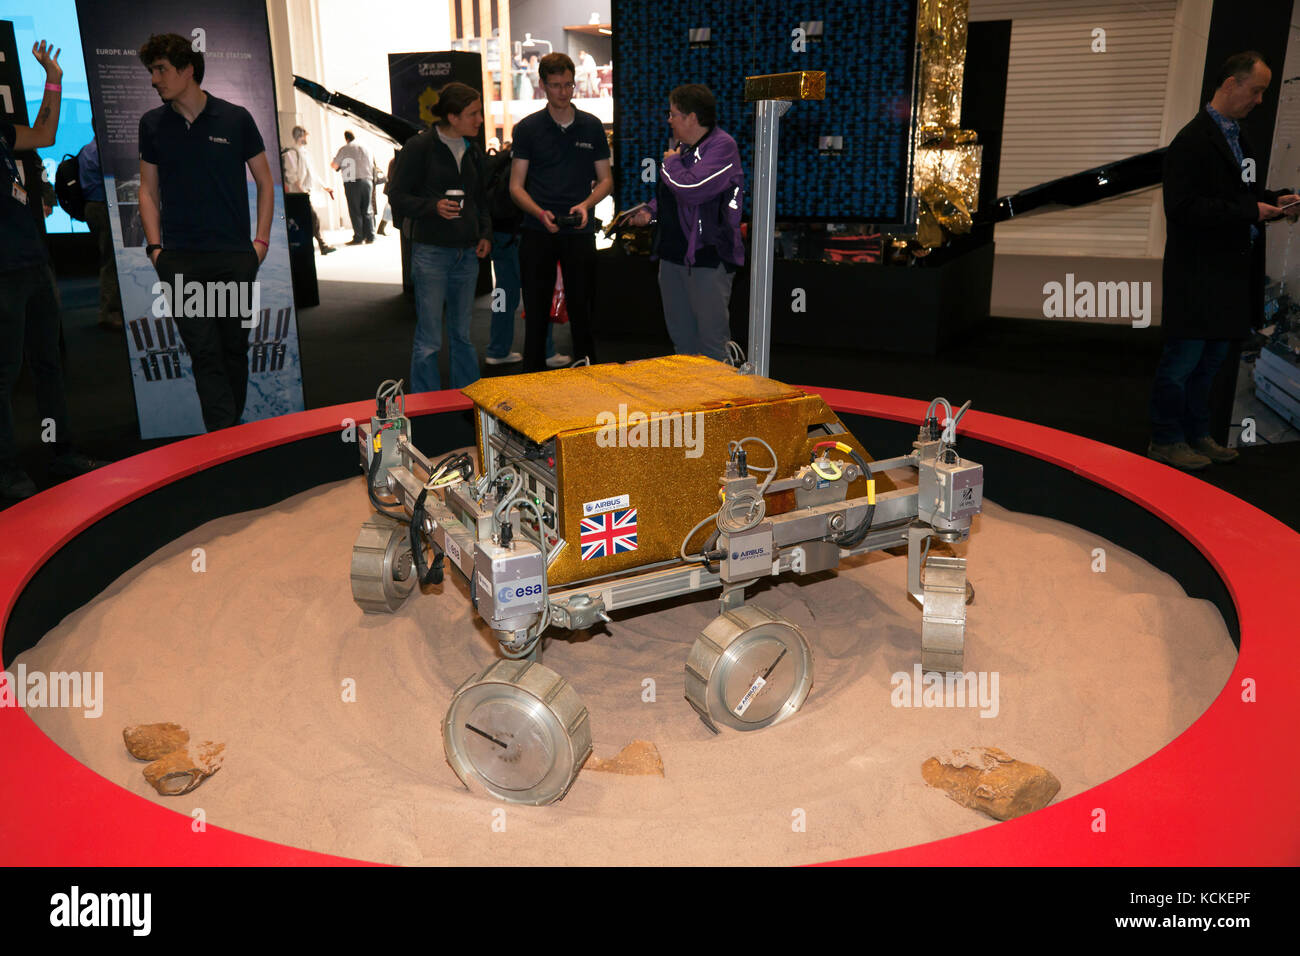 Prototype Mars Rover made by Airbus  in conjunction with the European Space Agency, on display at New Scientist - Stock Image